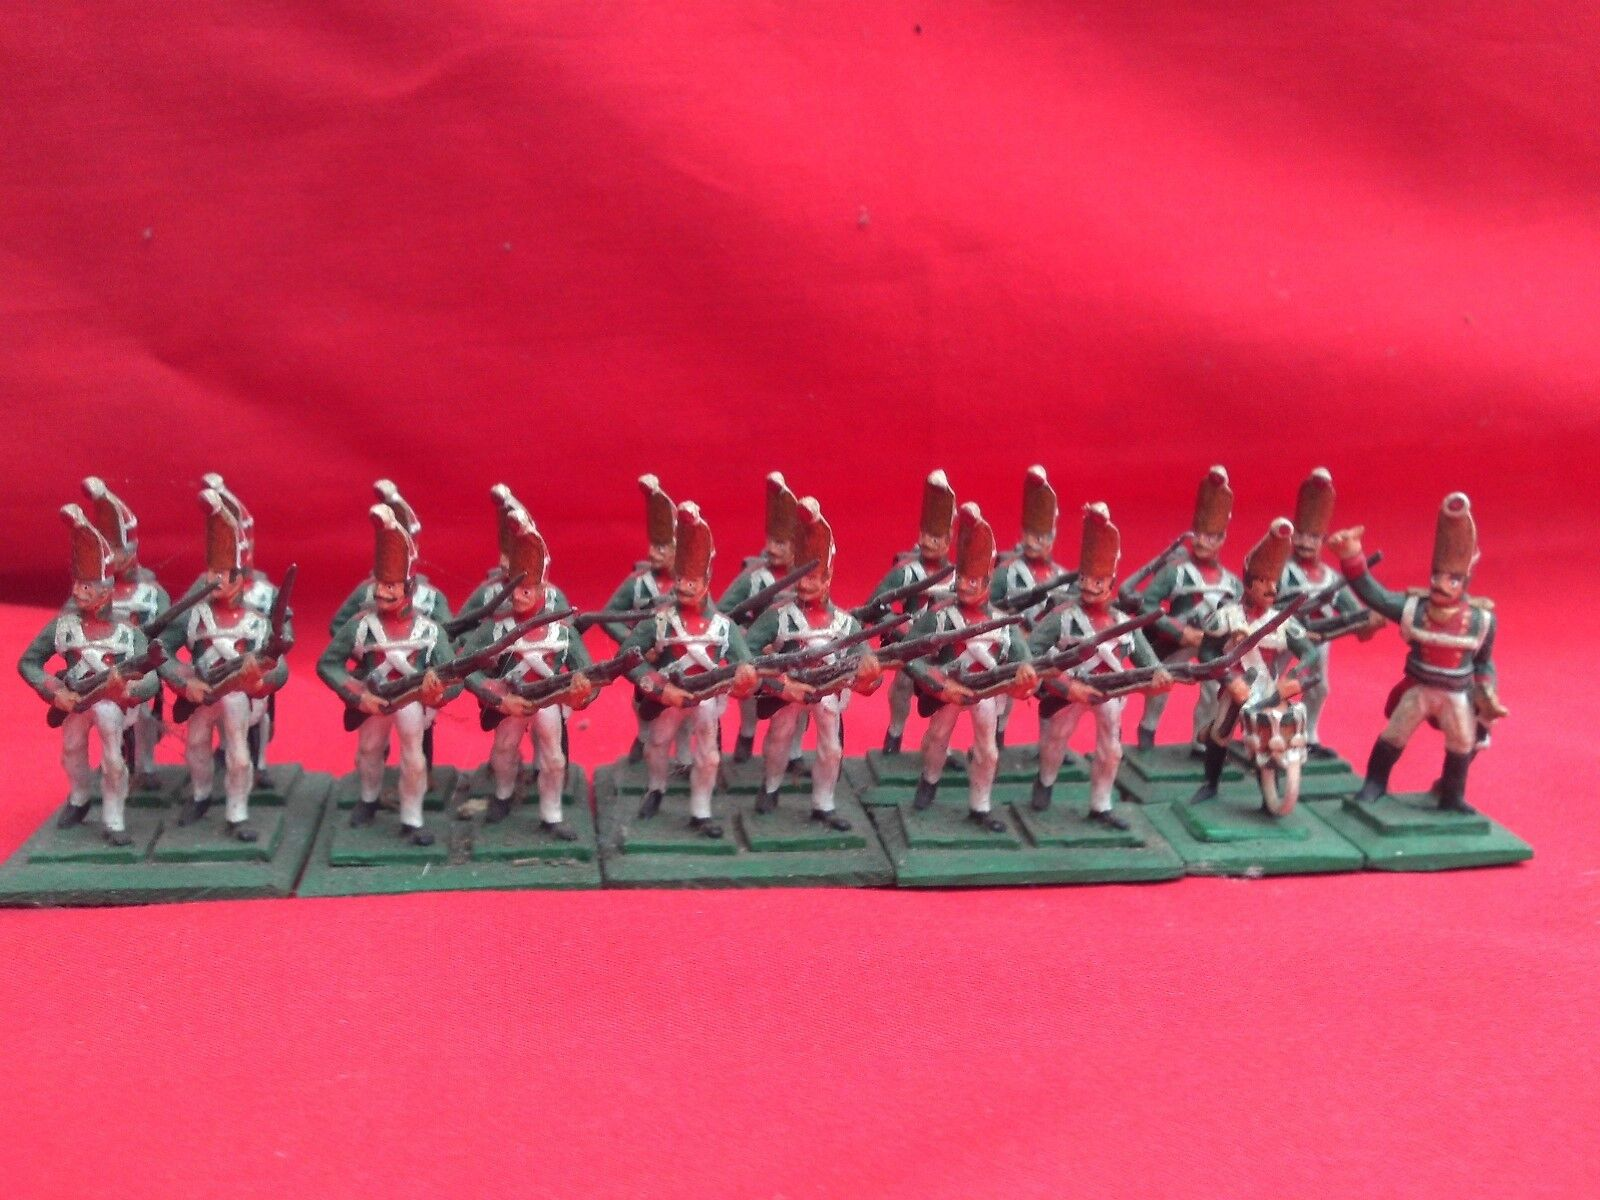 HINCHLIFFE 25 28mm EXPERTLY PAINTED NAPOLEONIC RUSSIAN PAVLOV GRENADIERS X 20